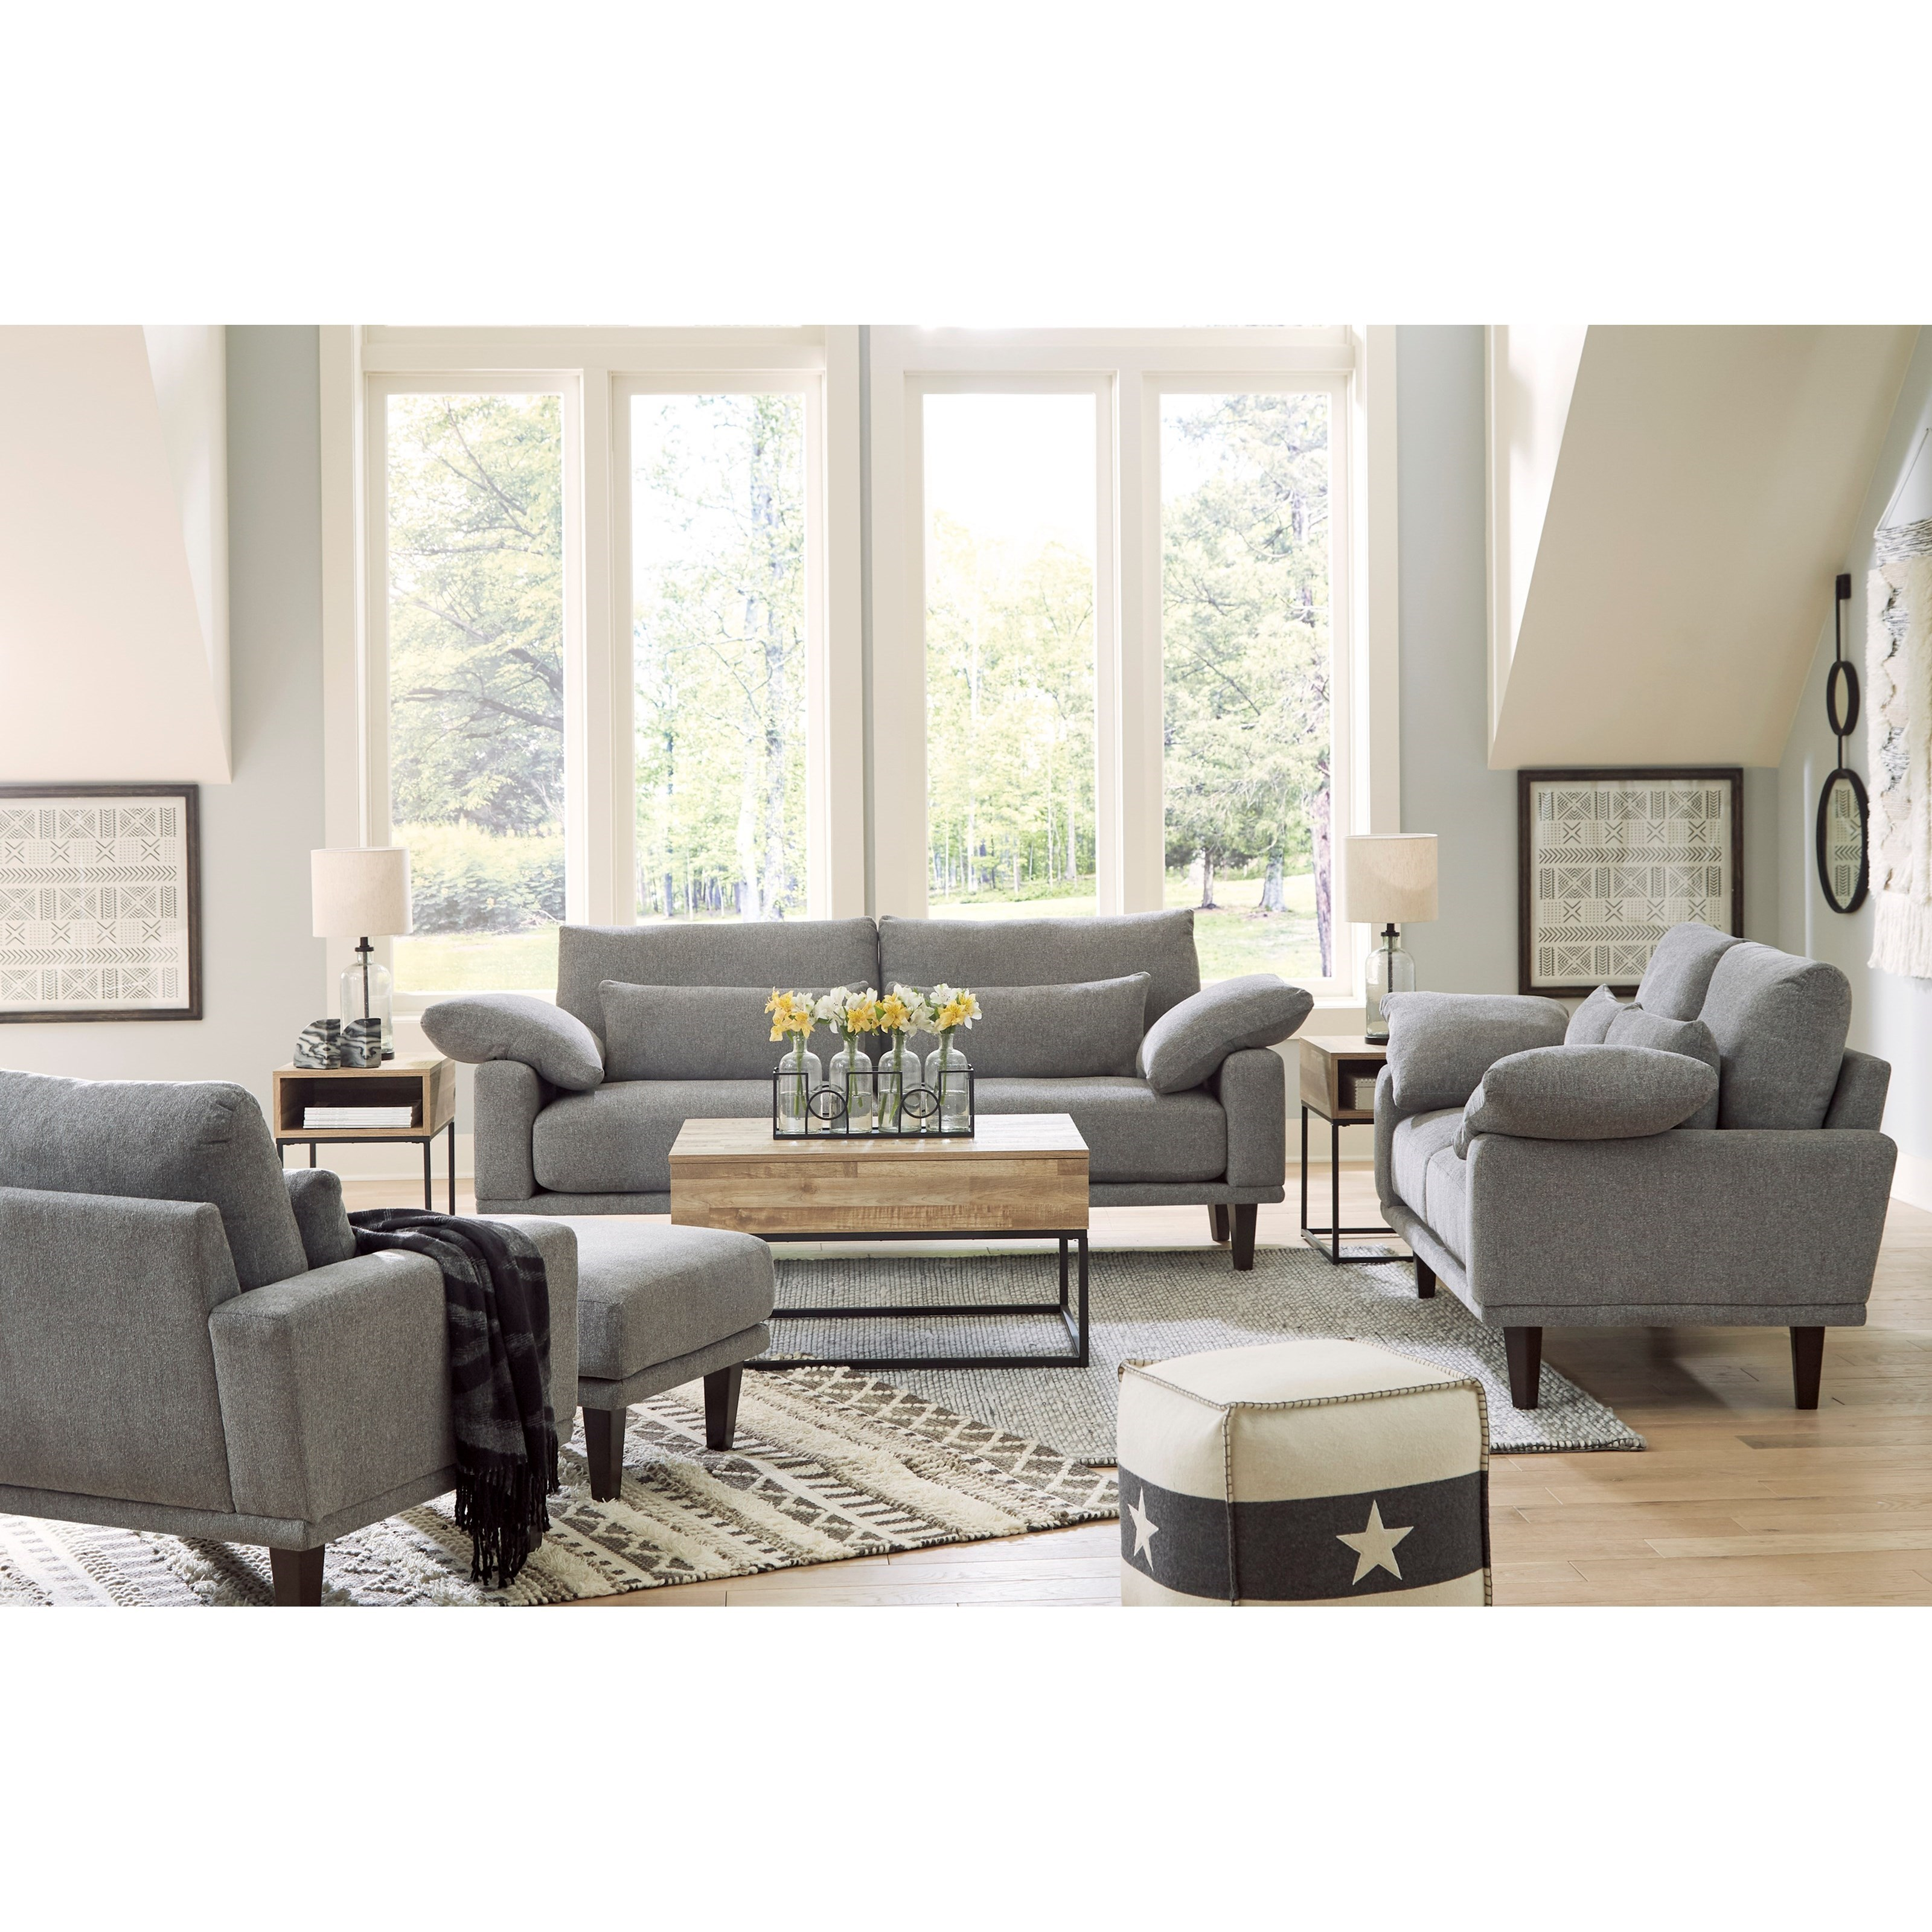 Baneway Stationary Living Room Group by Signature Design by Ashley at Wilson's Furniture